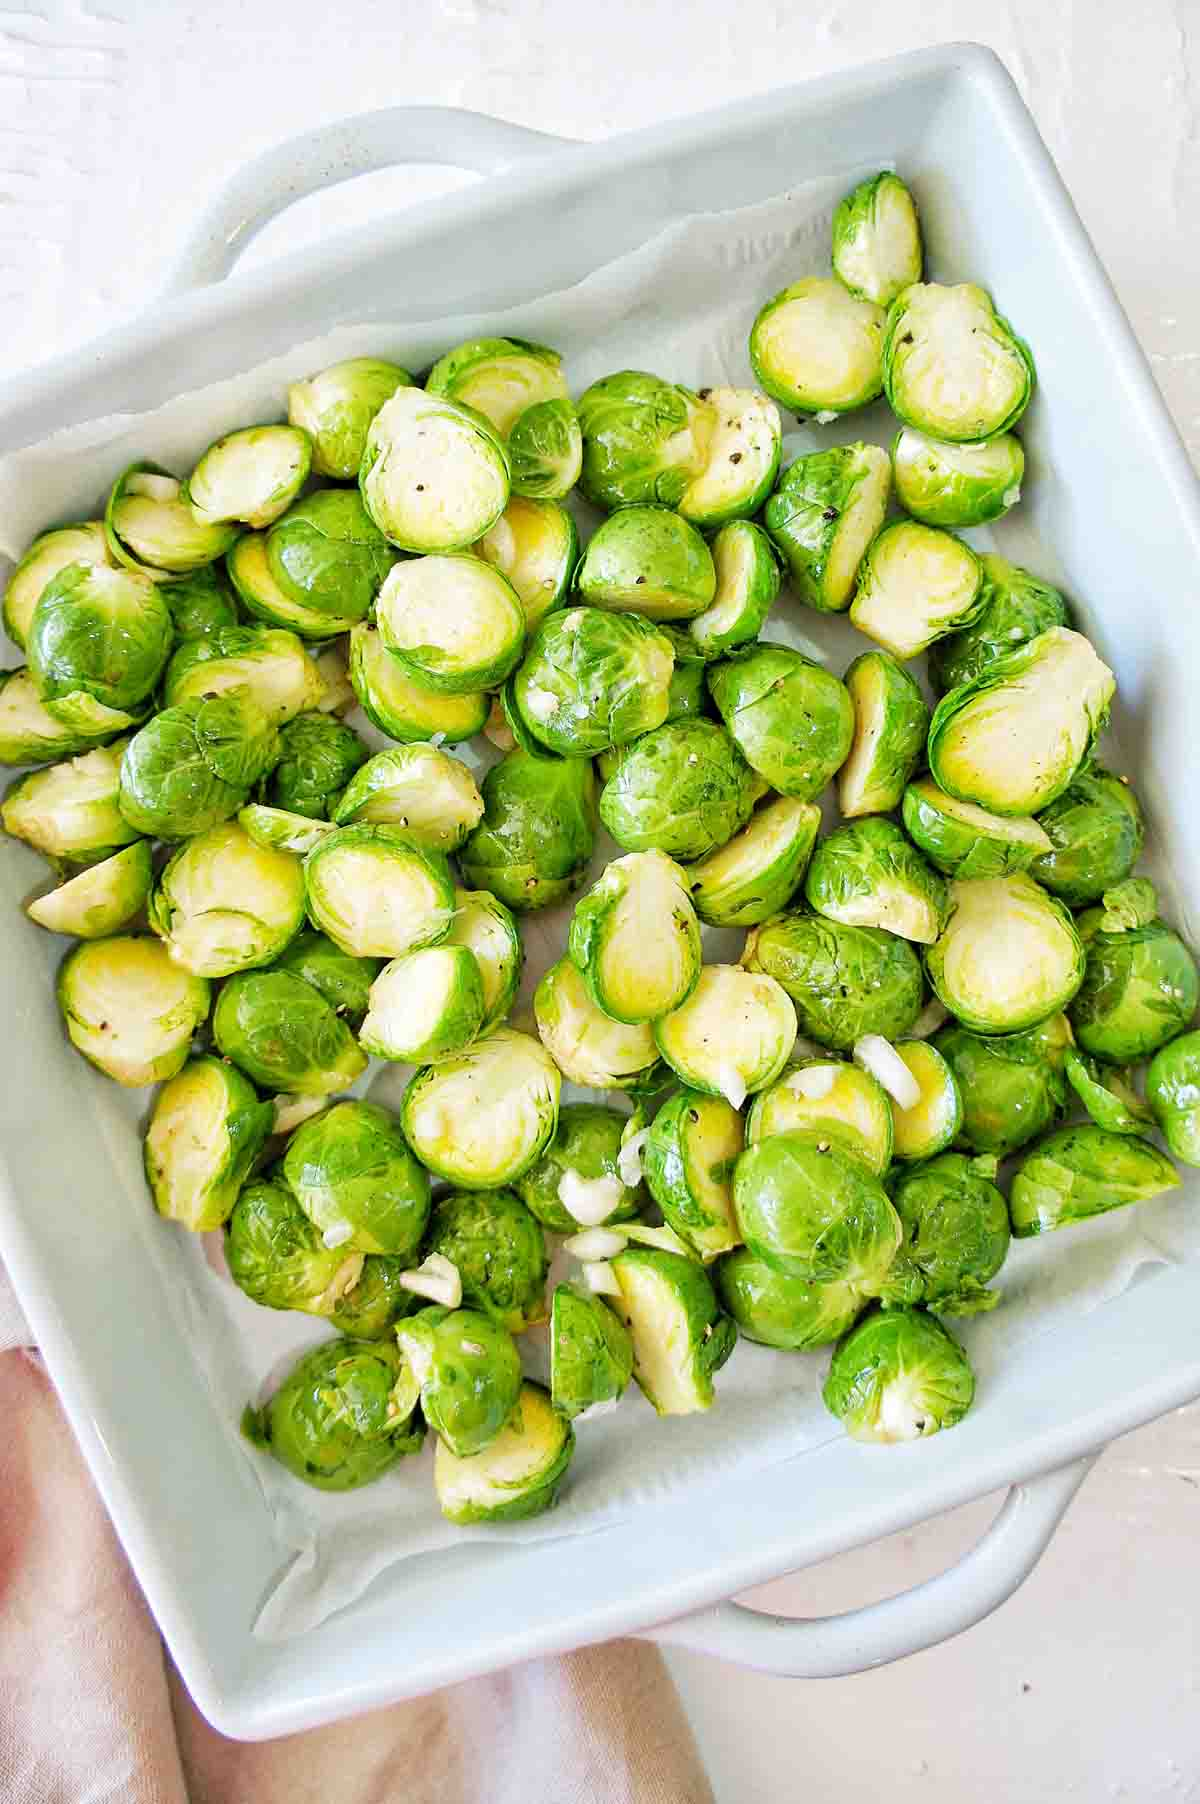 Brussel Sprouts in a blue baking tray